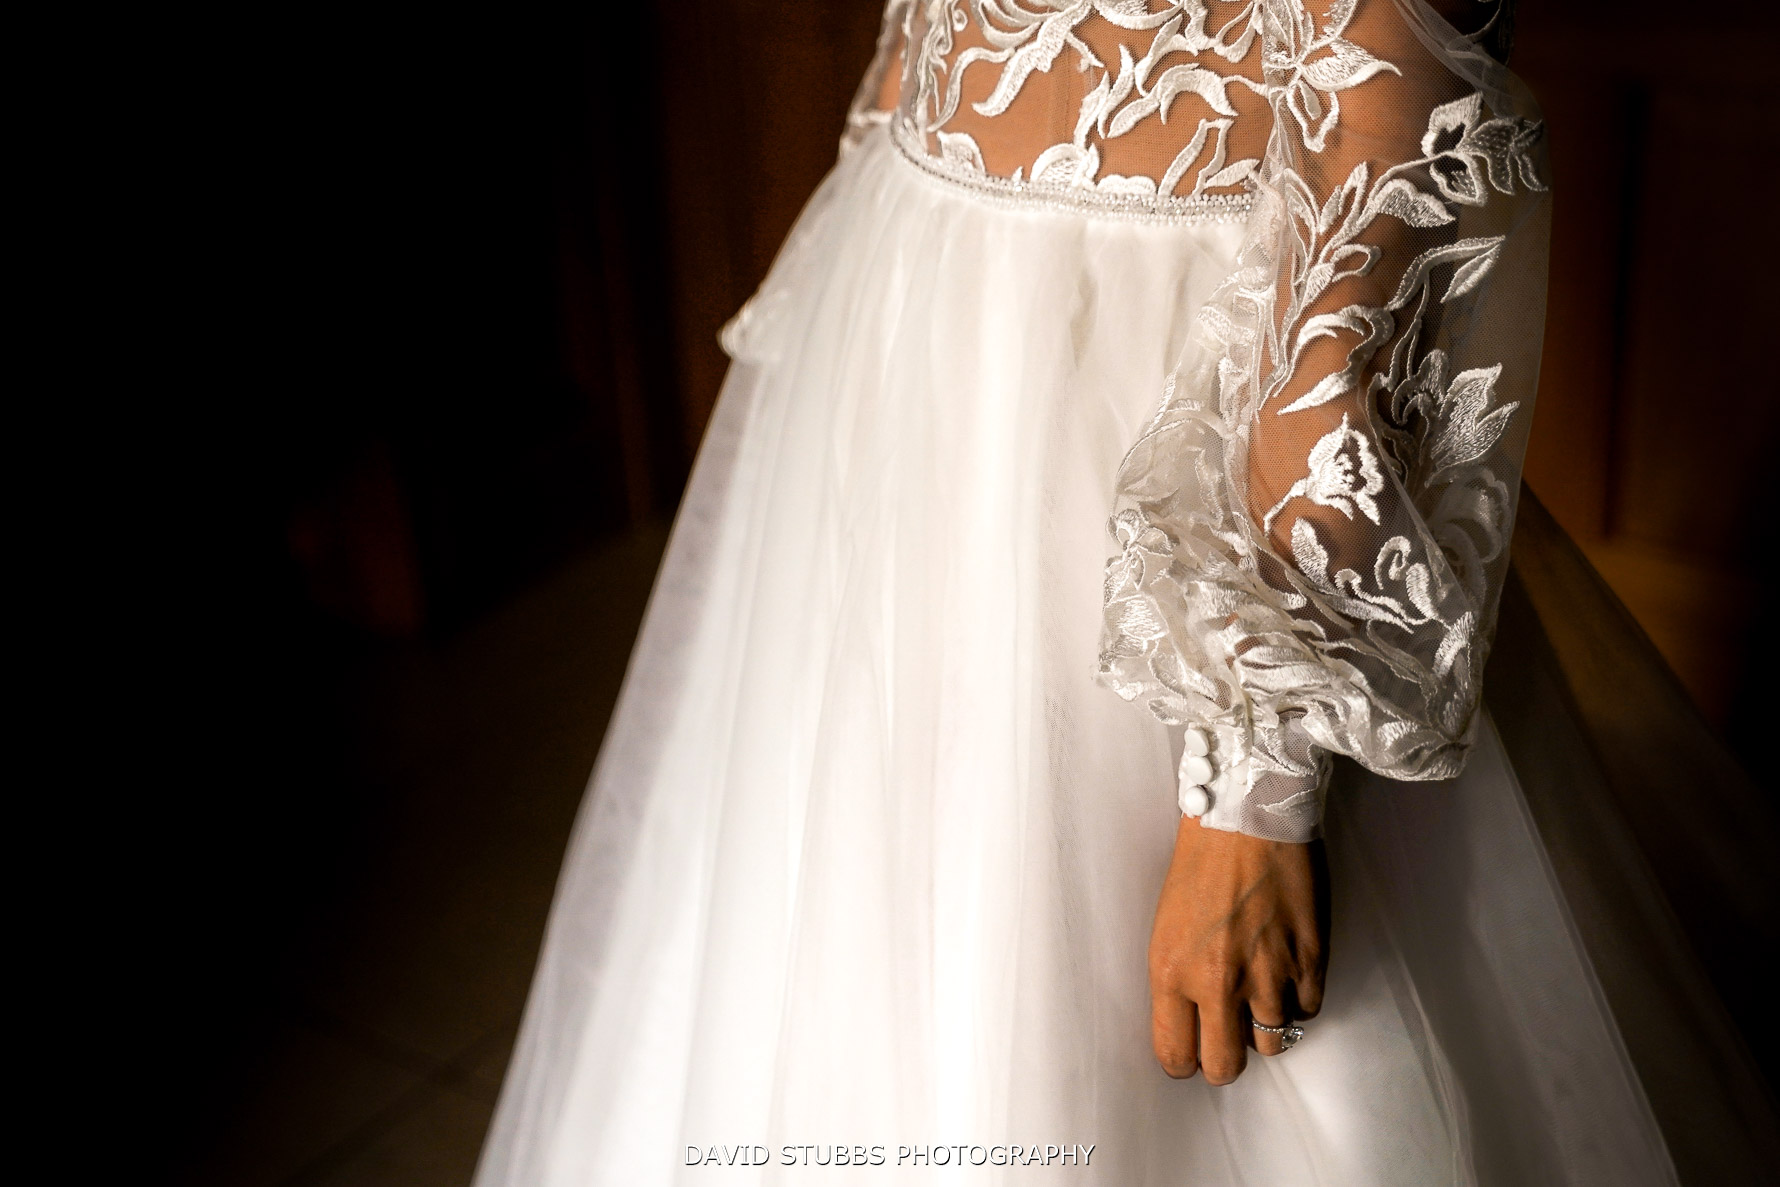 close up photo of the detail on the wedding dress